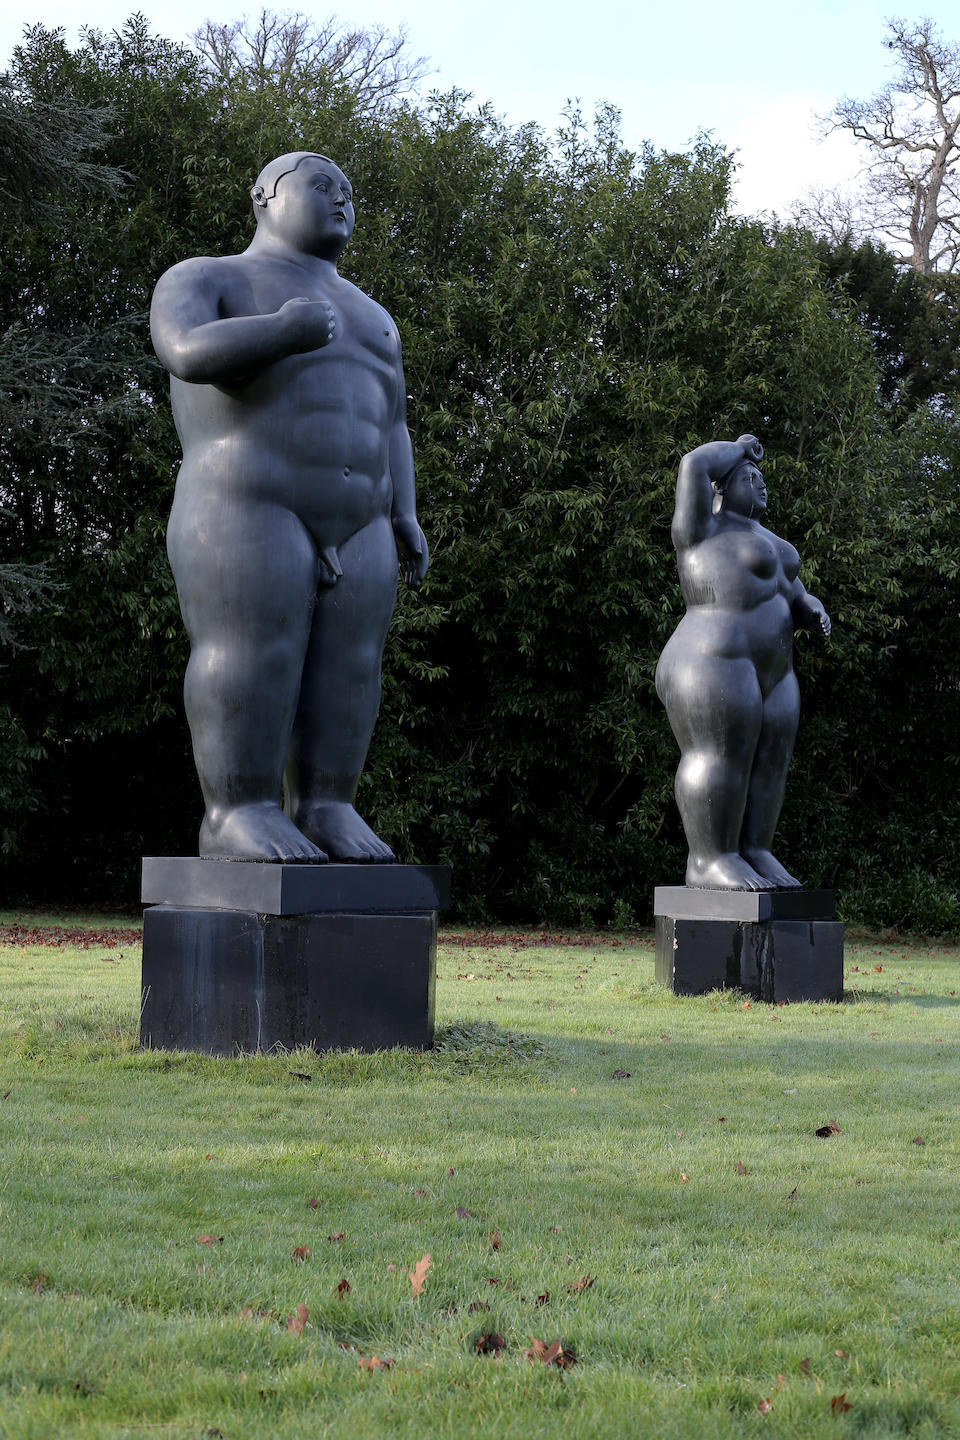 Fernando Botero (Colombian, born 1932) Adam and Eve, 2003each signed, numbered '3/3' and with the 'Fonderia Mariani Pietrasanta Italy' stamp (to the base)bronzeAdam 120cm  wide x 96cm deep x 337cm high (47 1/4in wide x 37 13/16in deep x 141 5/16in high) Eve 120cm wide x 90cm deep x 359cm high (47 1/4in wide x 35 7/16in deep x 141 5/16in high) This work was conceived in 2003, and is number 3 from an edition of 3.